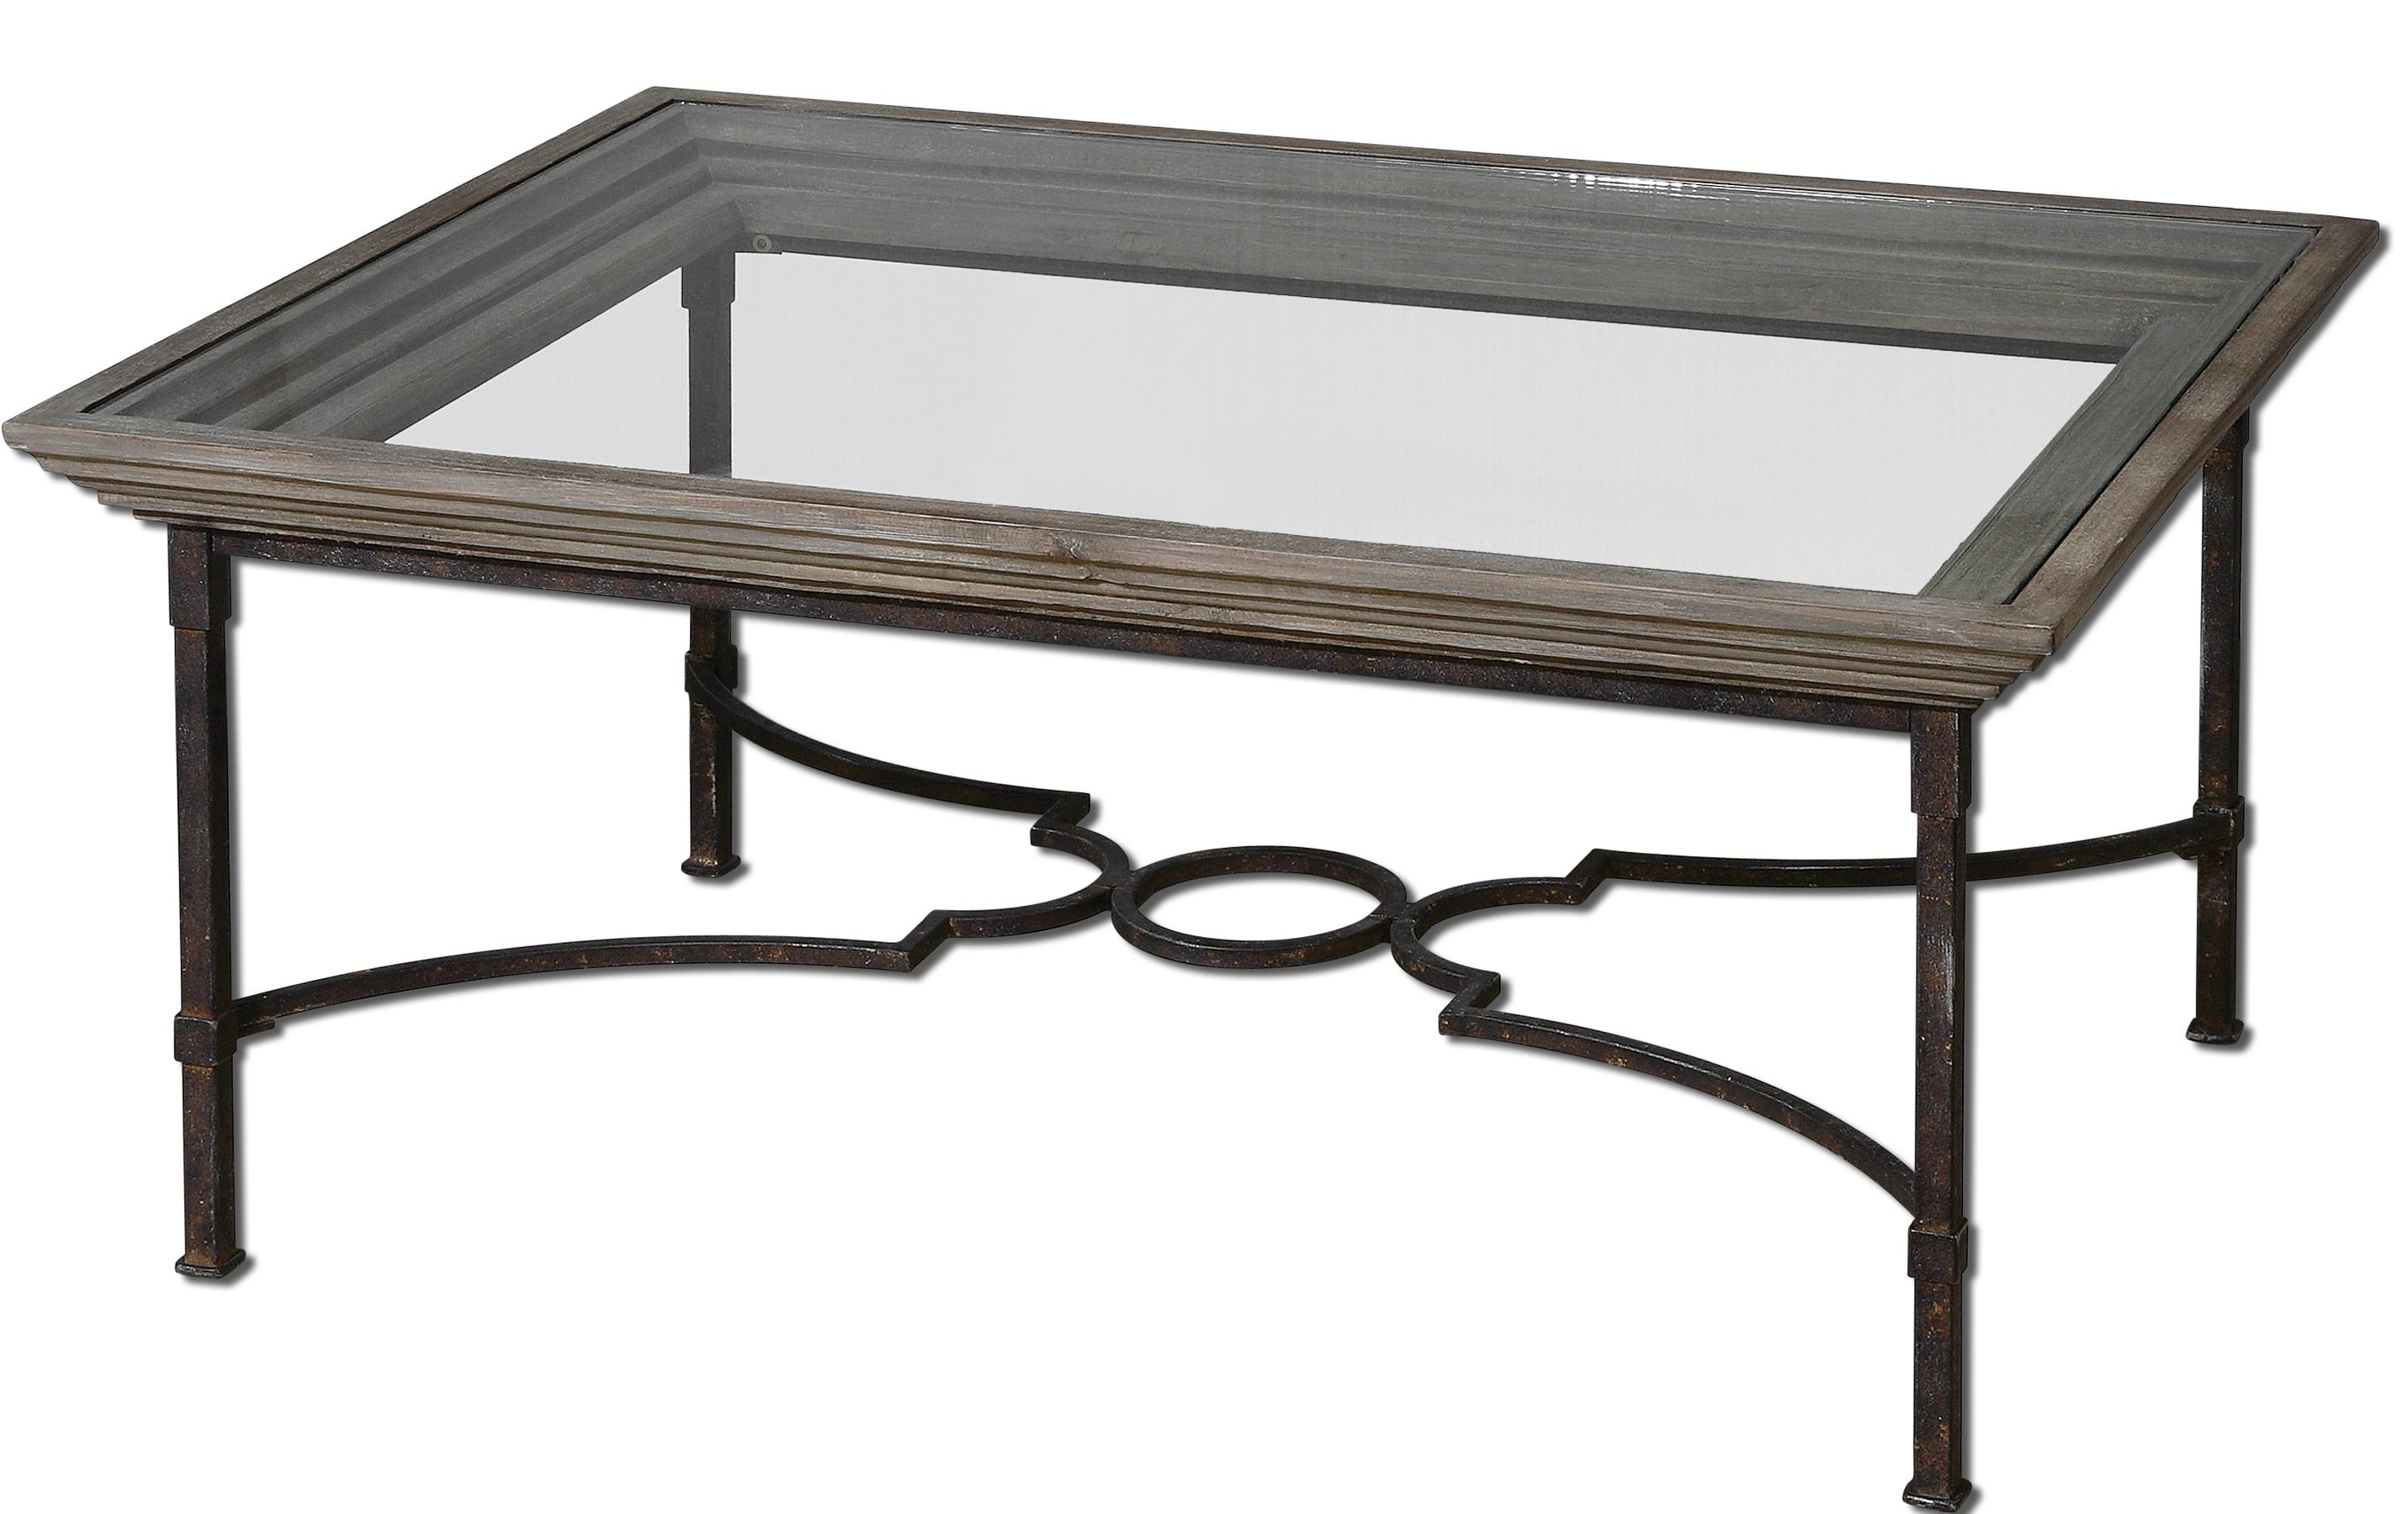 Uttermost Accent Furniture Huxley Coffee Table - Item Number: 24291